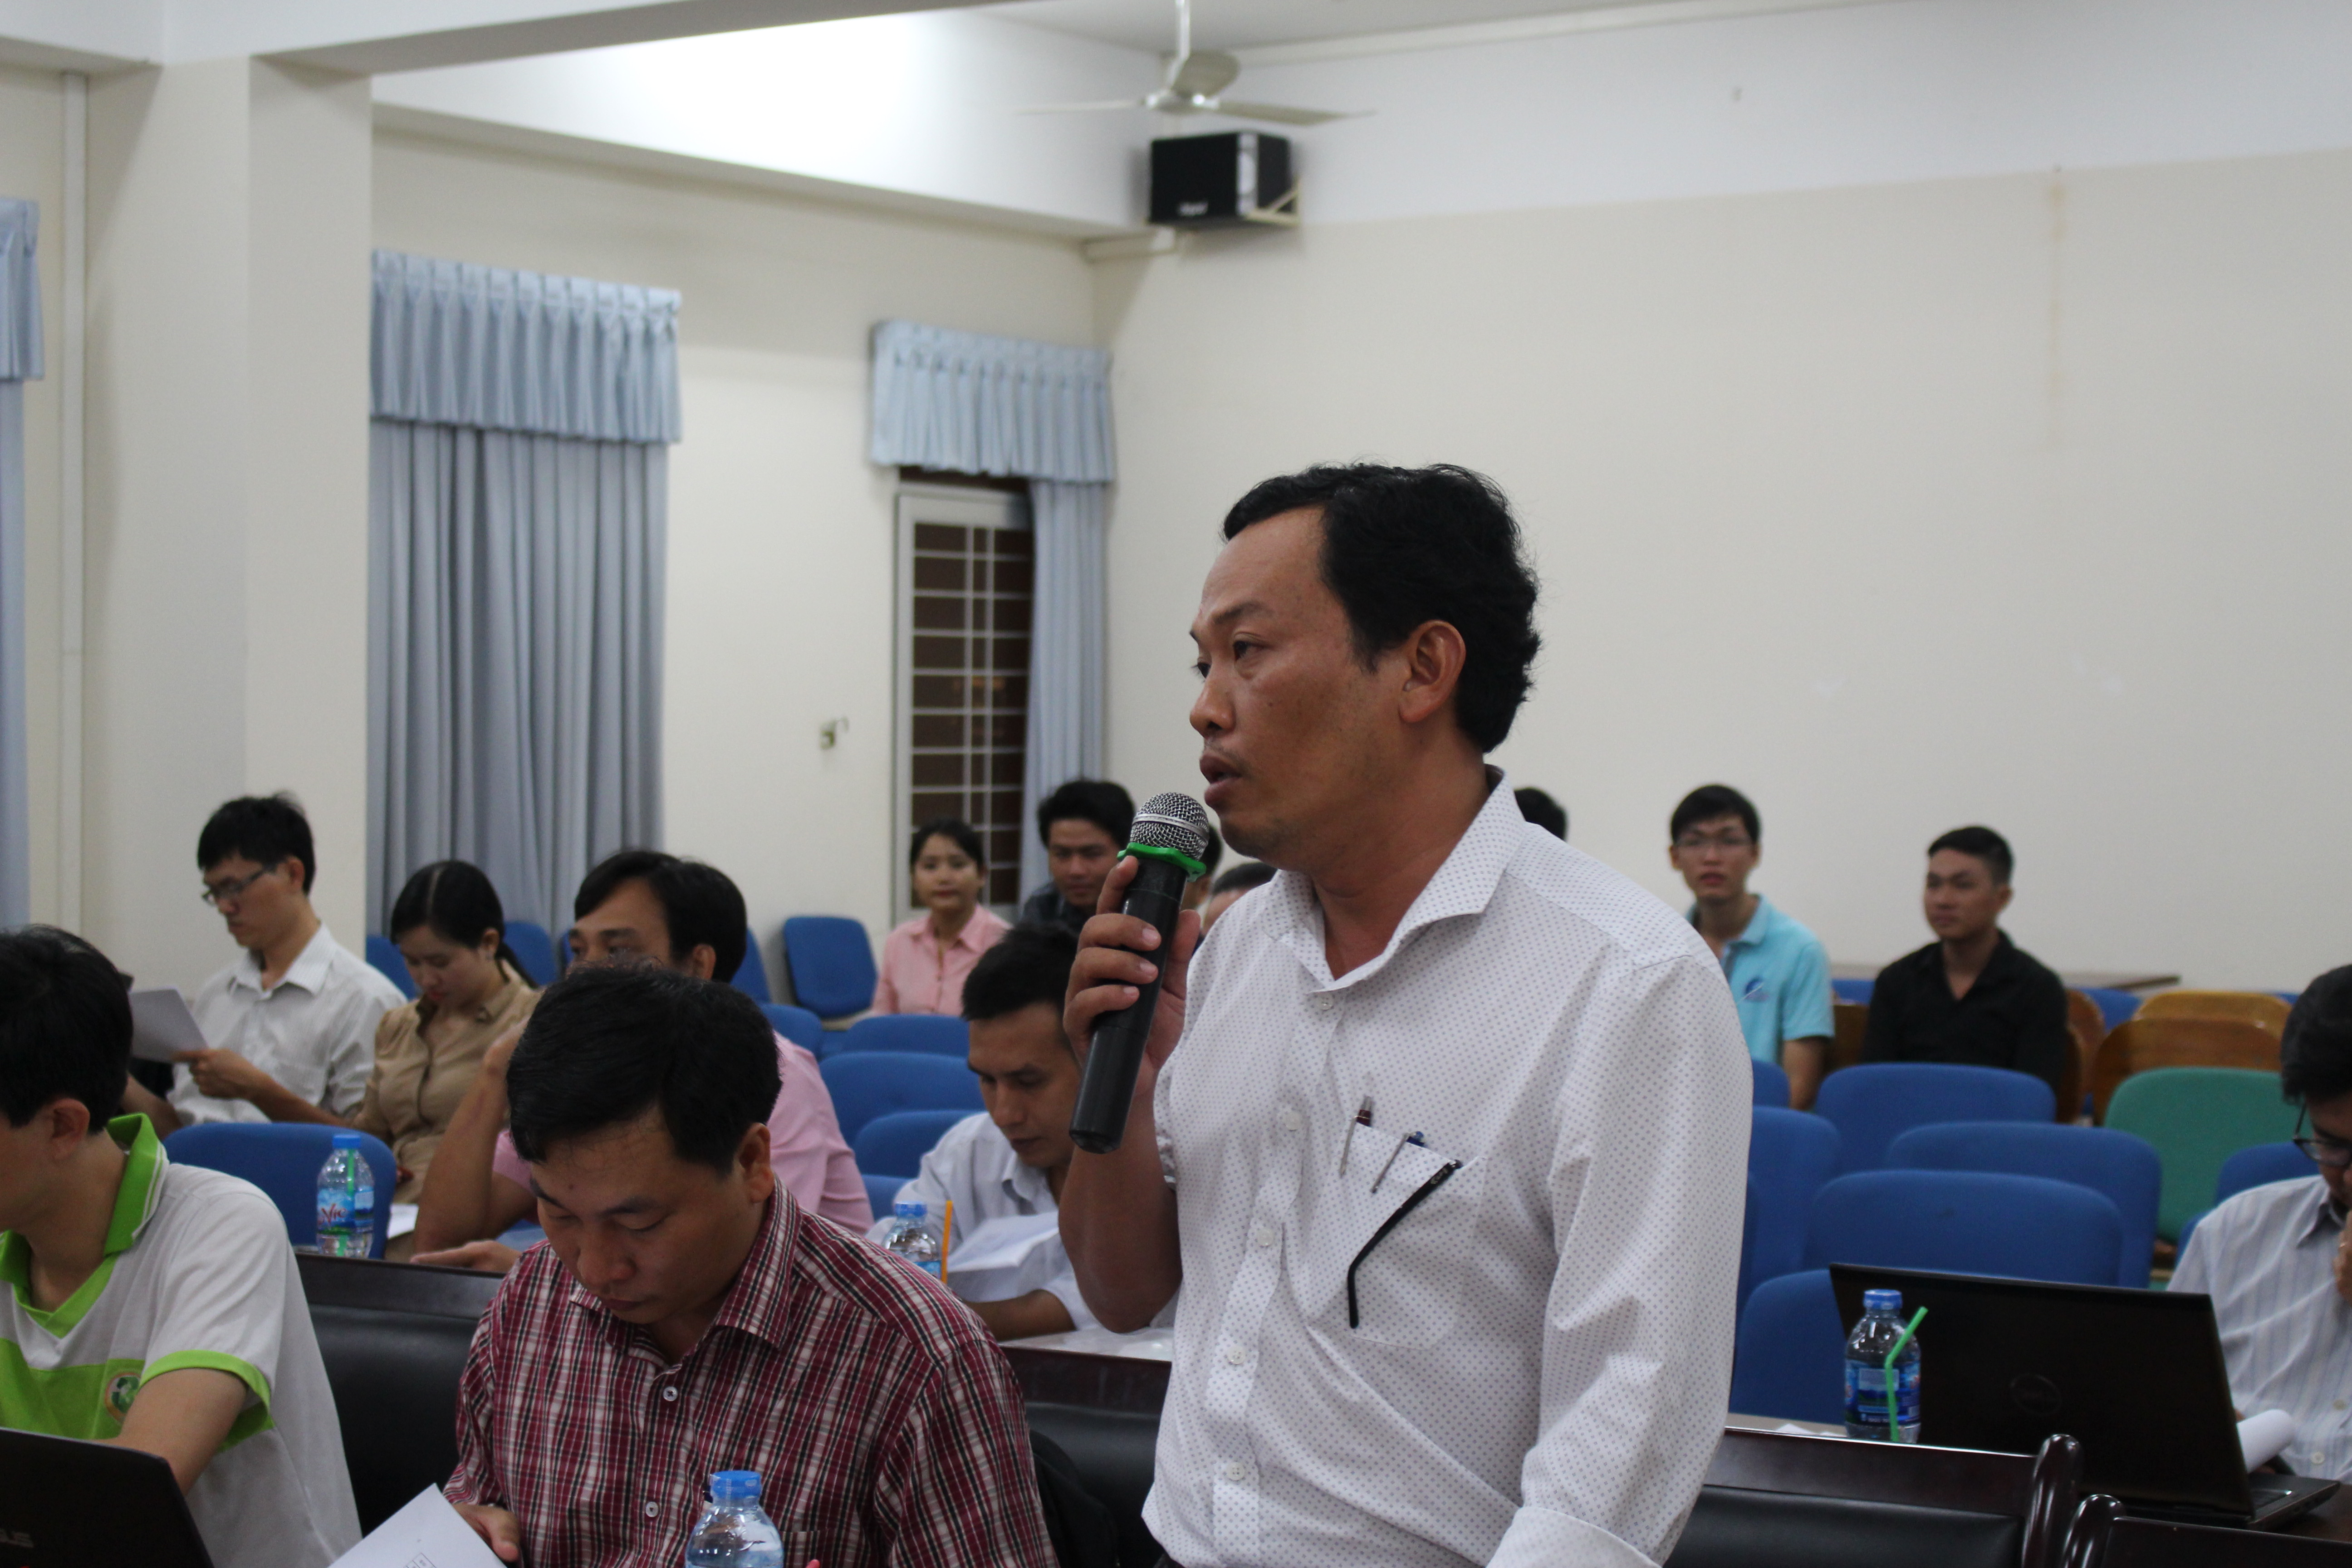 Mr. Huynh Thanh Sang – Dean of the Faculty of Information Techology, An Giang Vocational College provided feedback on the program